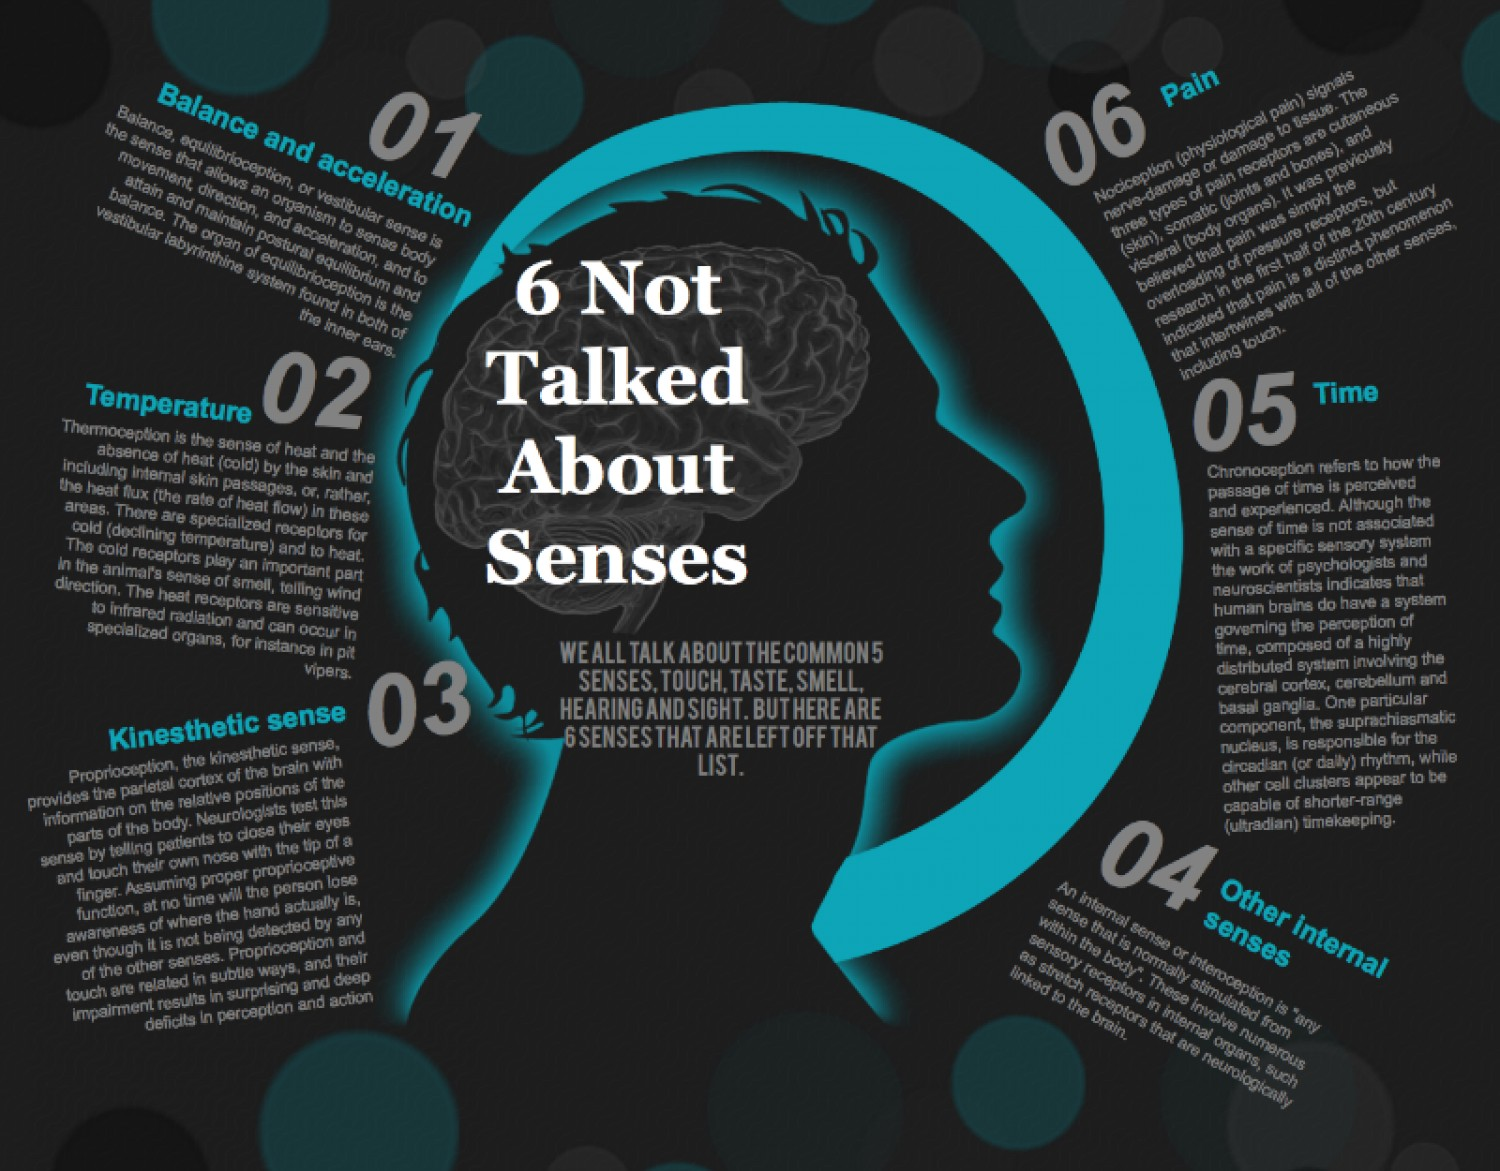 6 Talked About senses